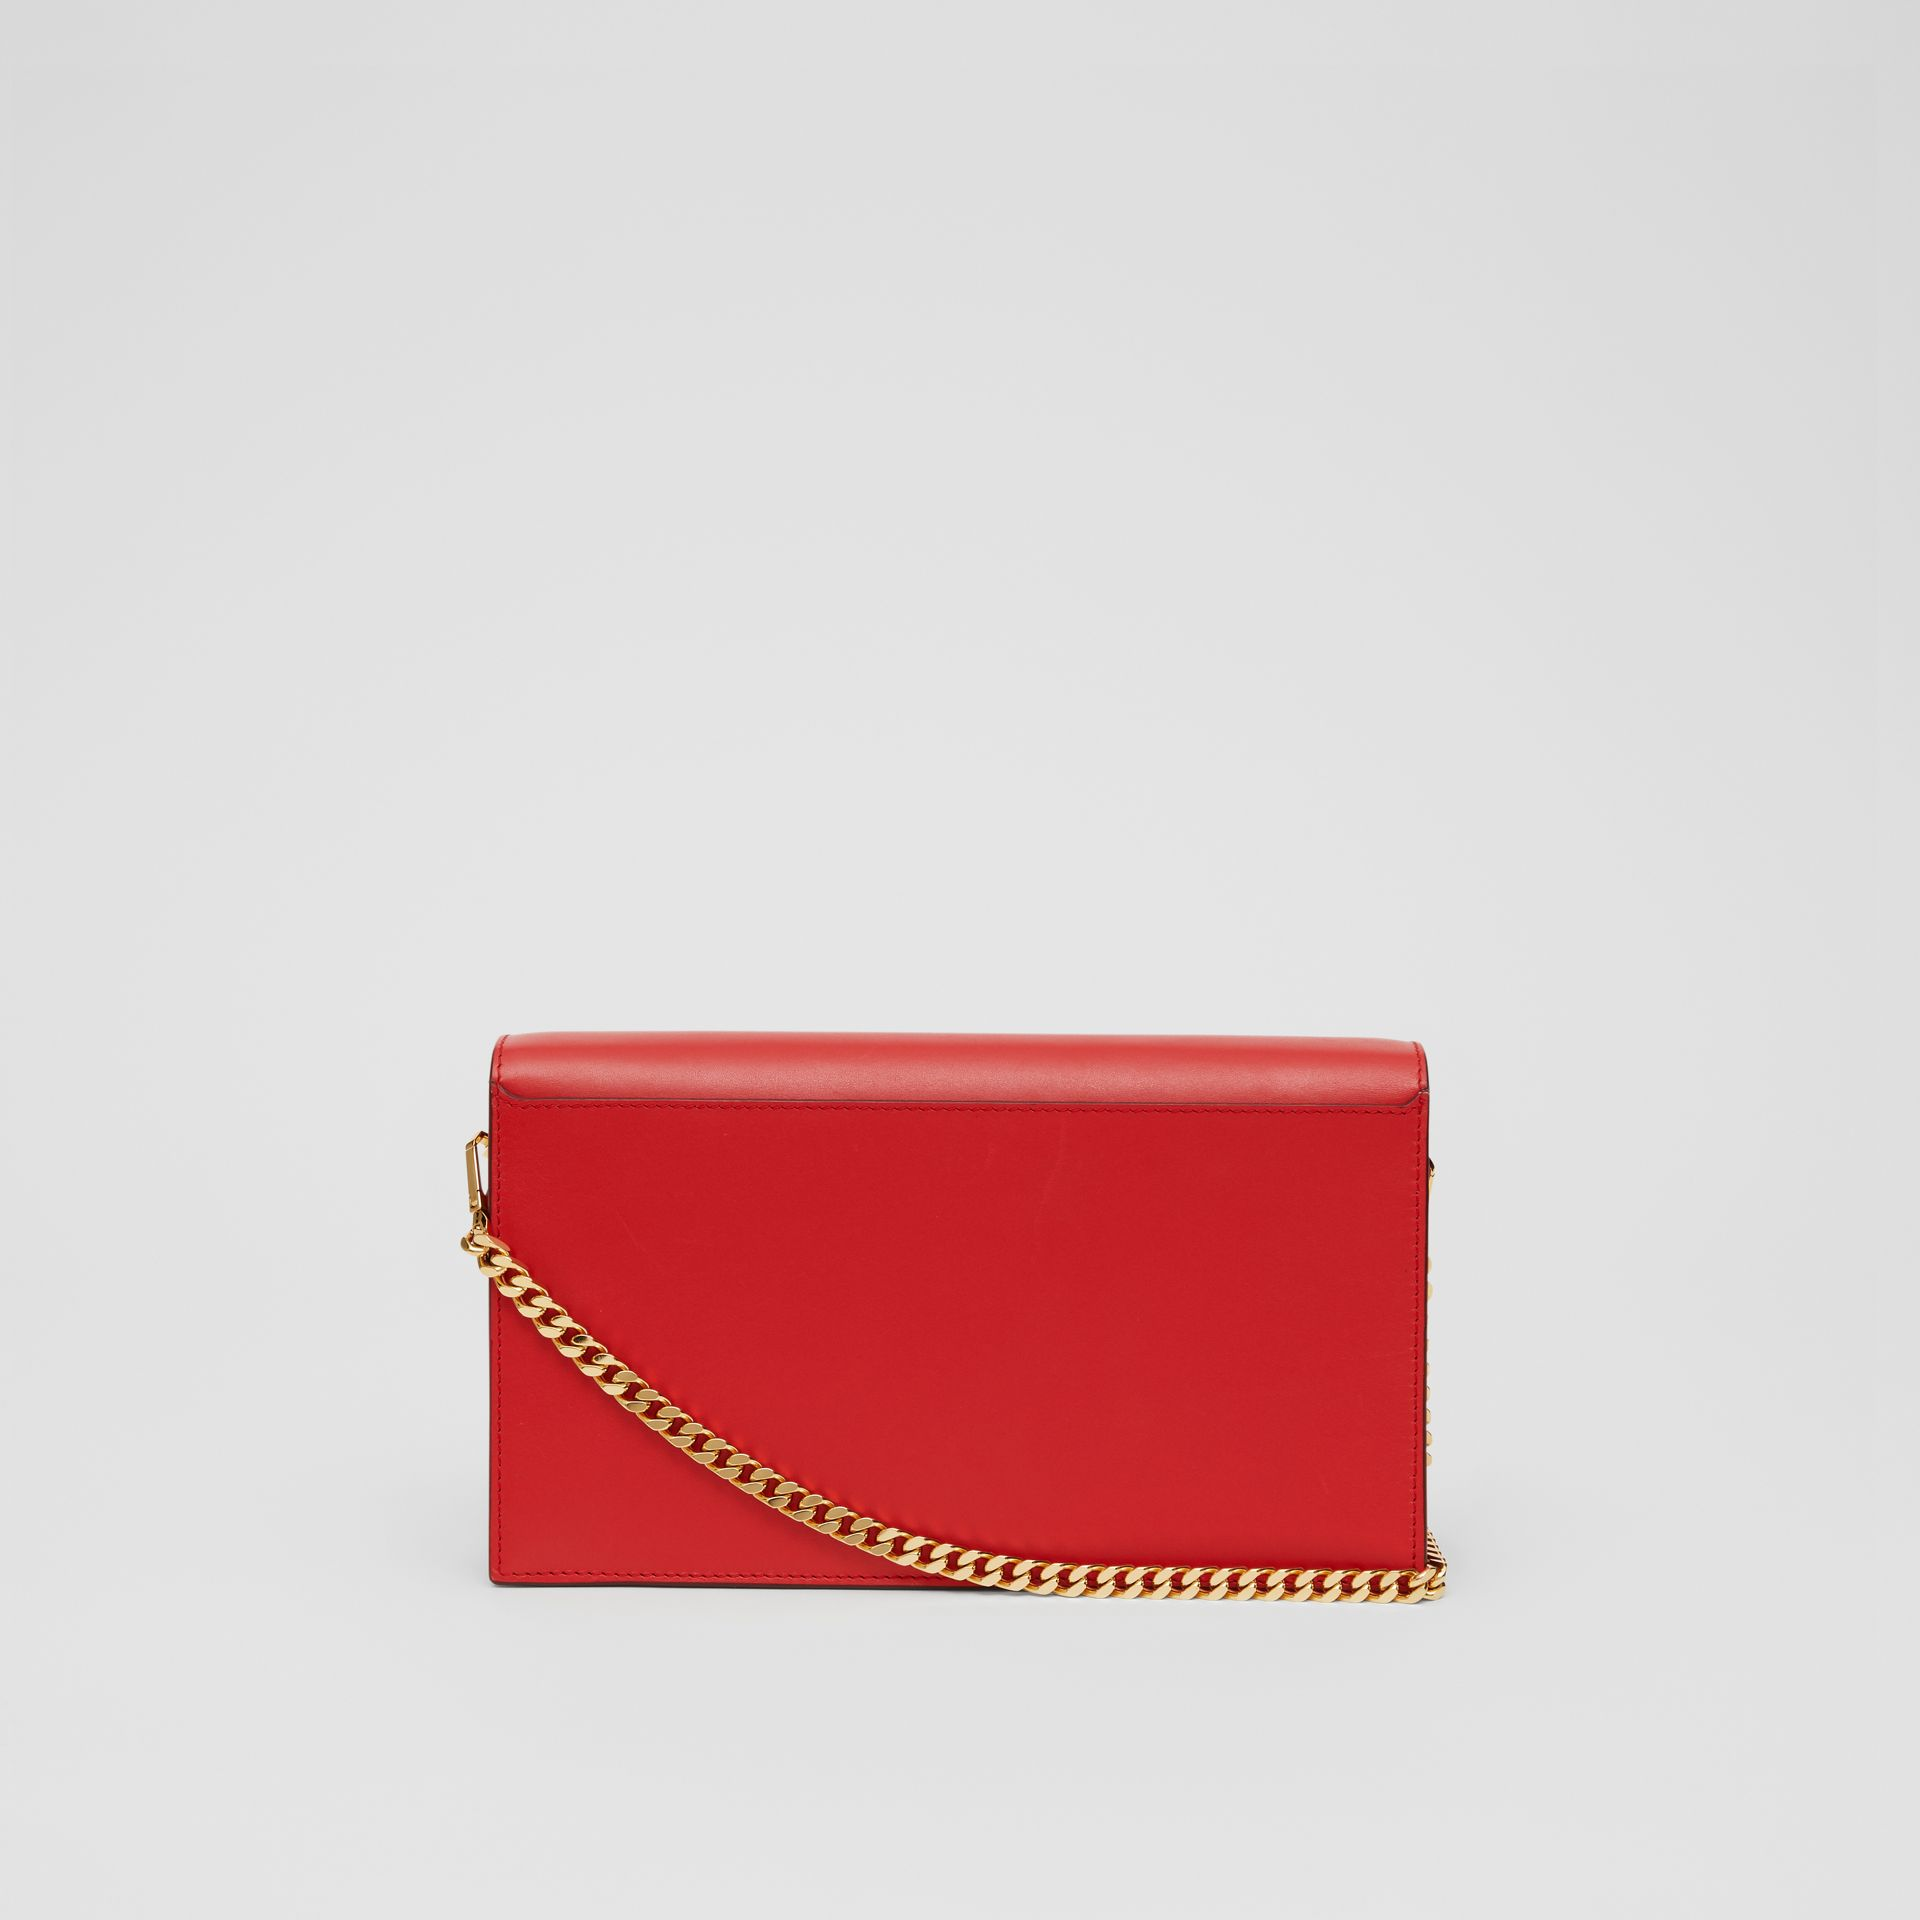 Small Leather TB Envelope Clutch in Bright Military Red - Women | Burberry United States - gallery image 7